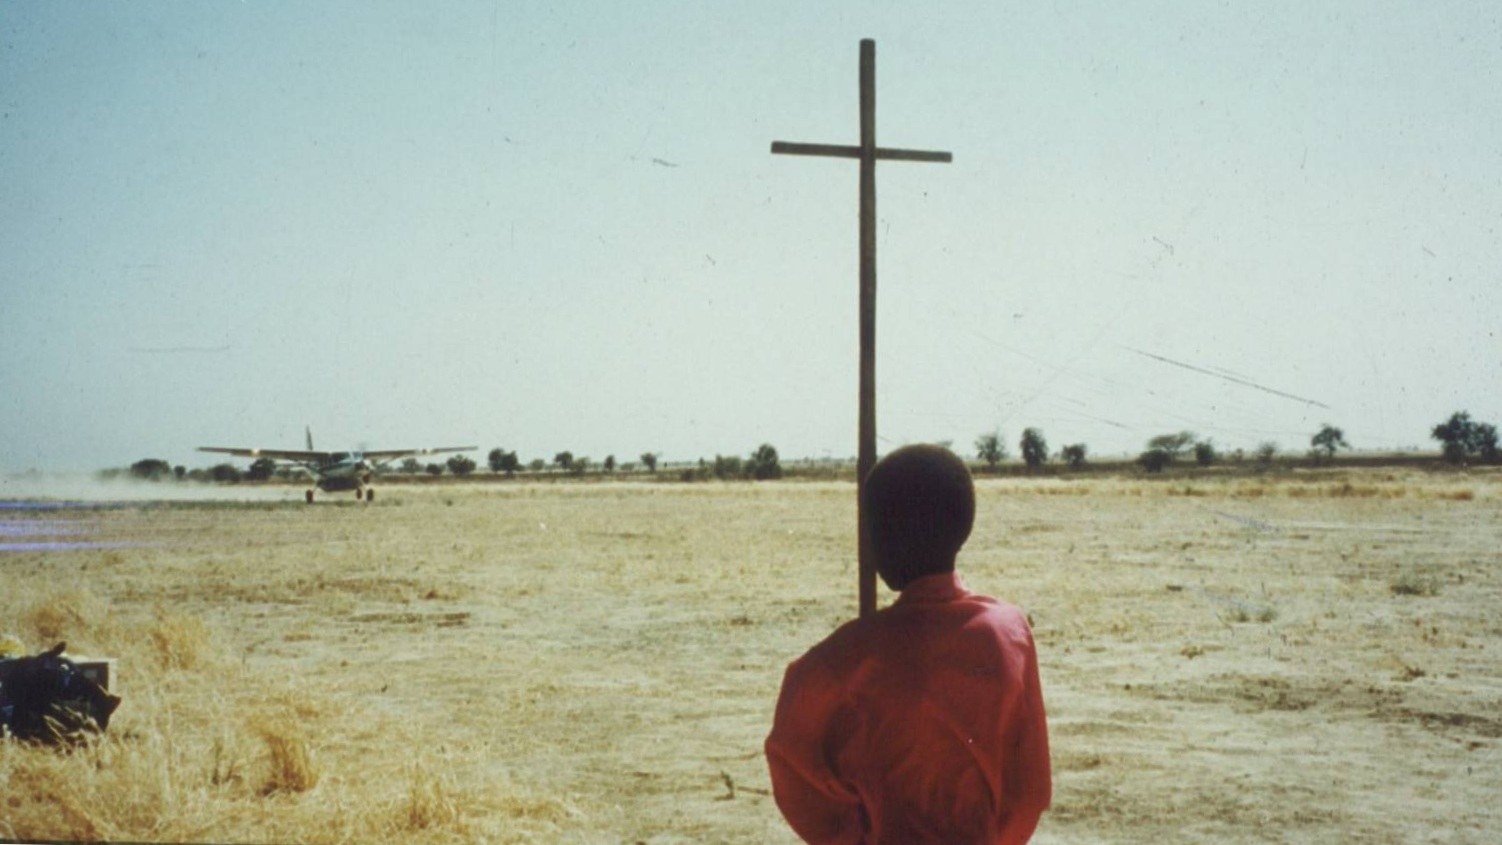 Child+holding+cross+on+airstrip+%281%29.jpg